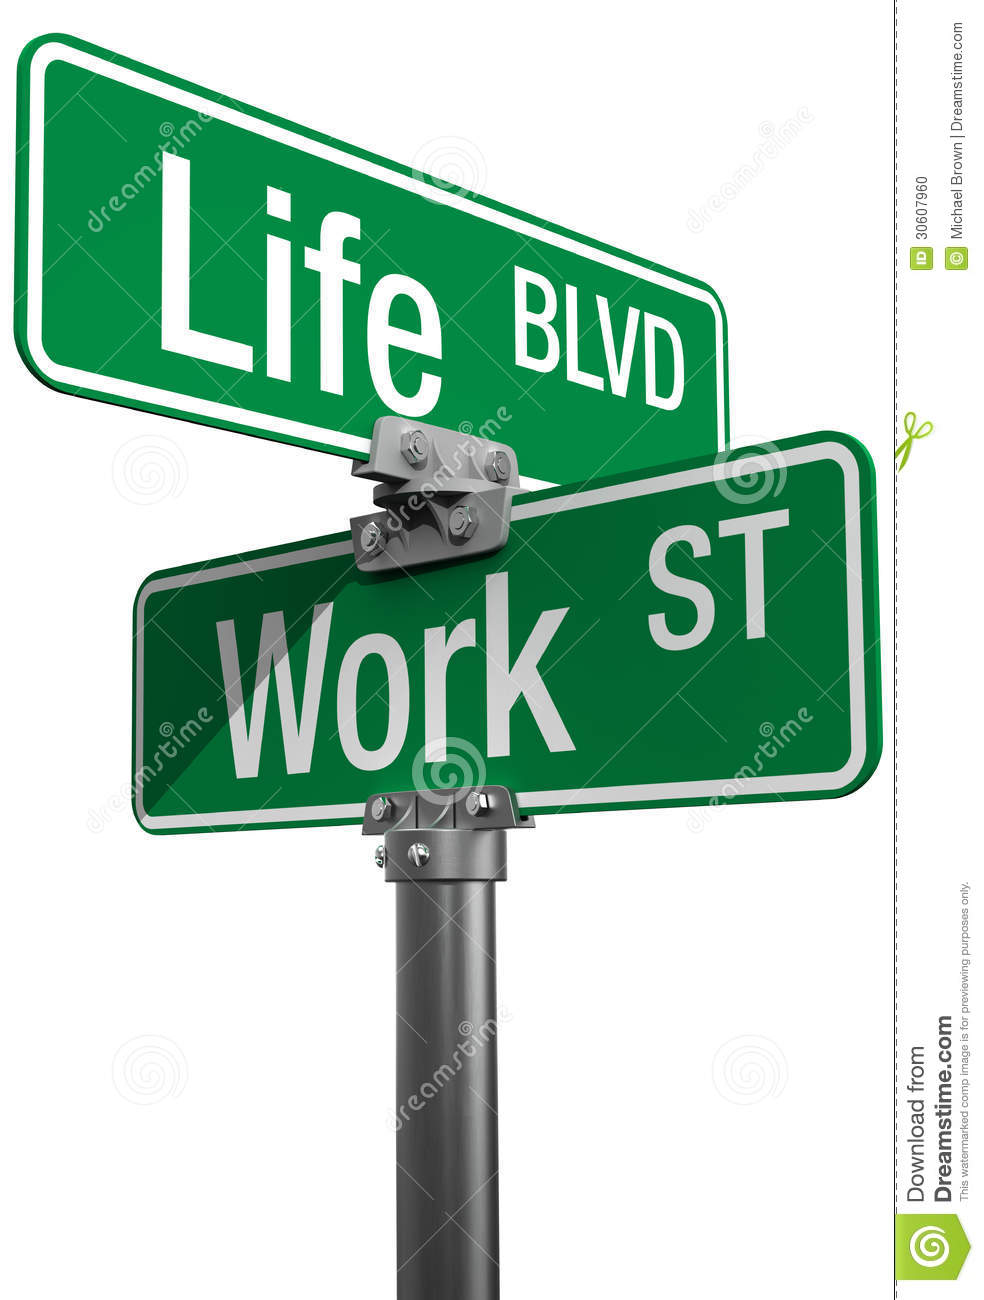 Work or Life decision street signs